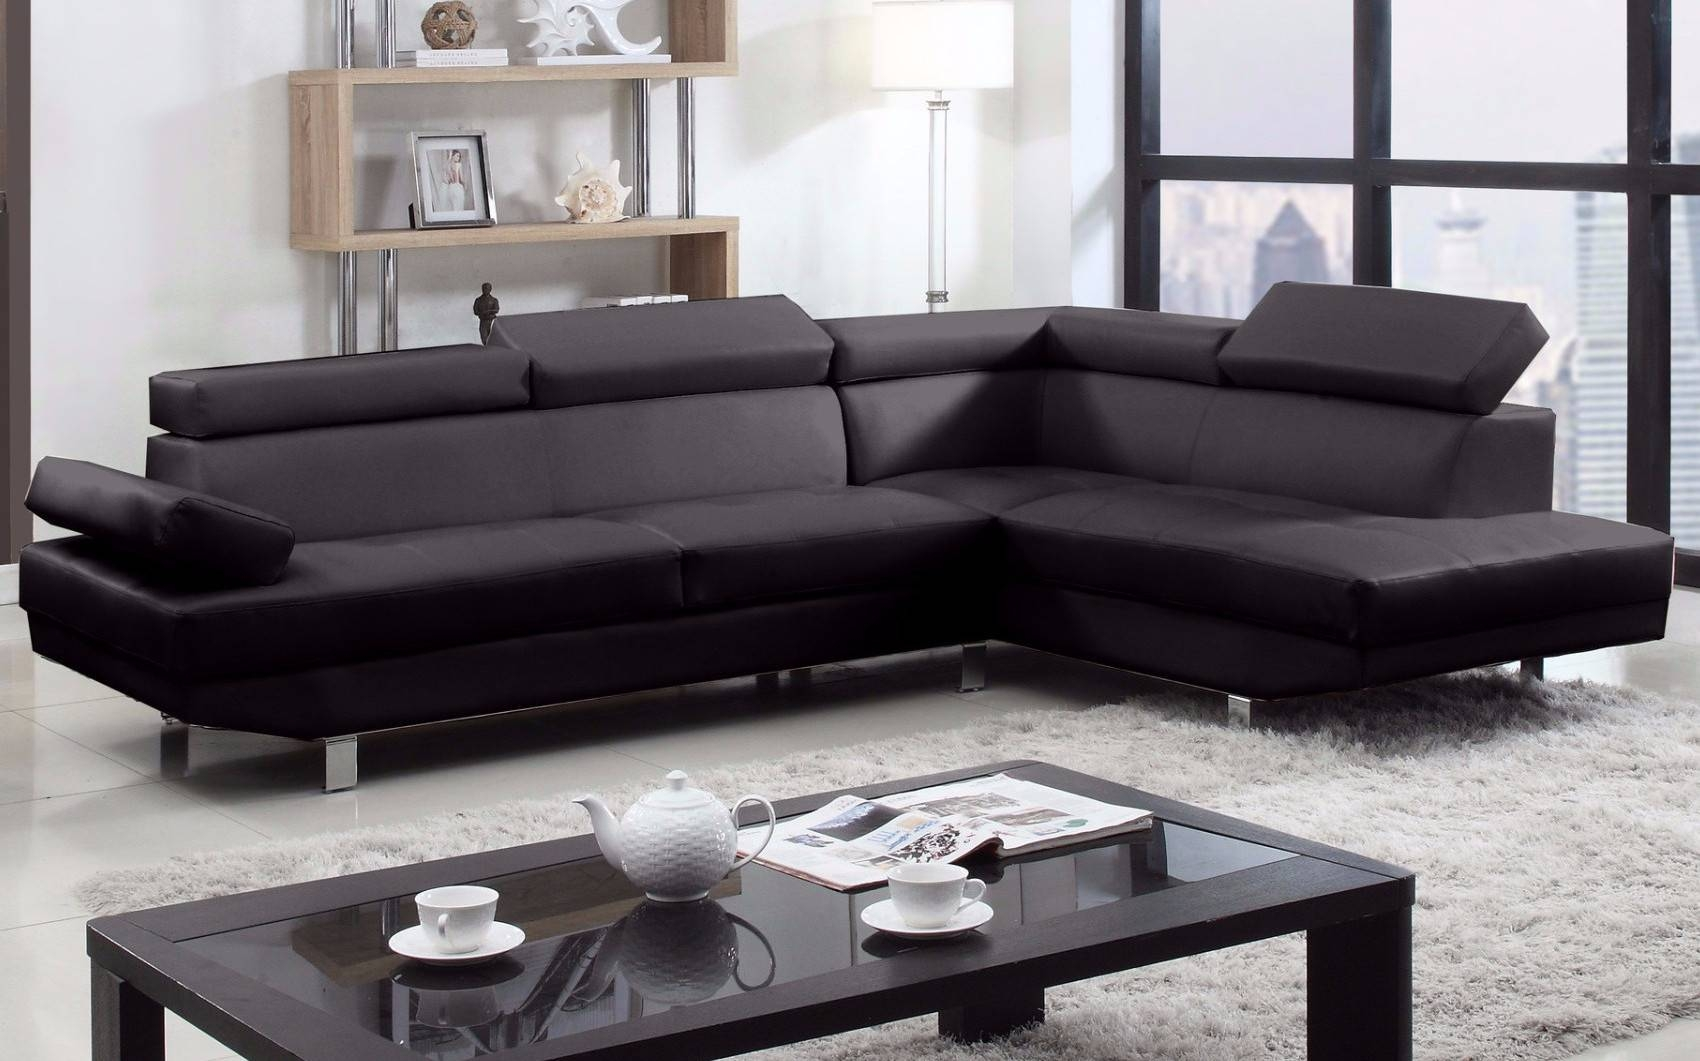 2 Piece Modern Bonded Leather Right Facing Chaise Sectional Sofa intended for Faux Leather Sectional Sofas (Image 2 of 25)